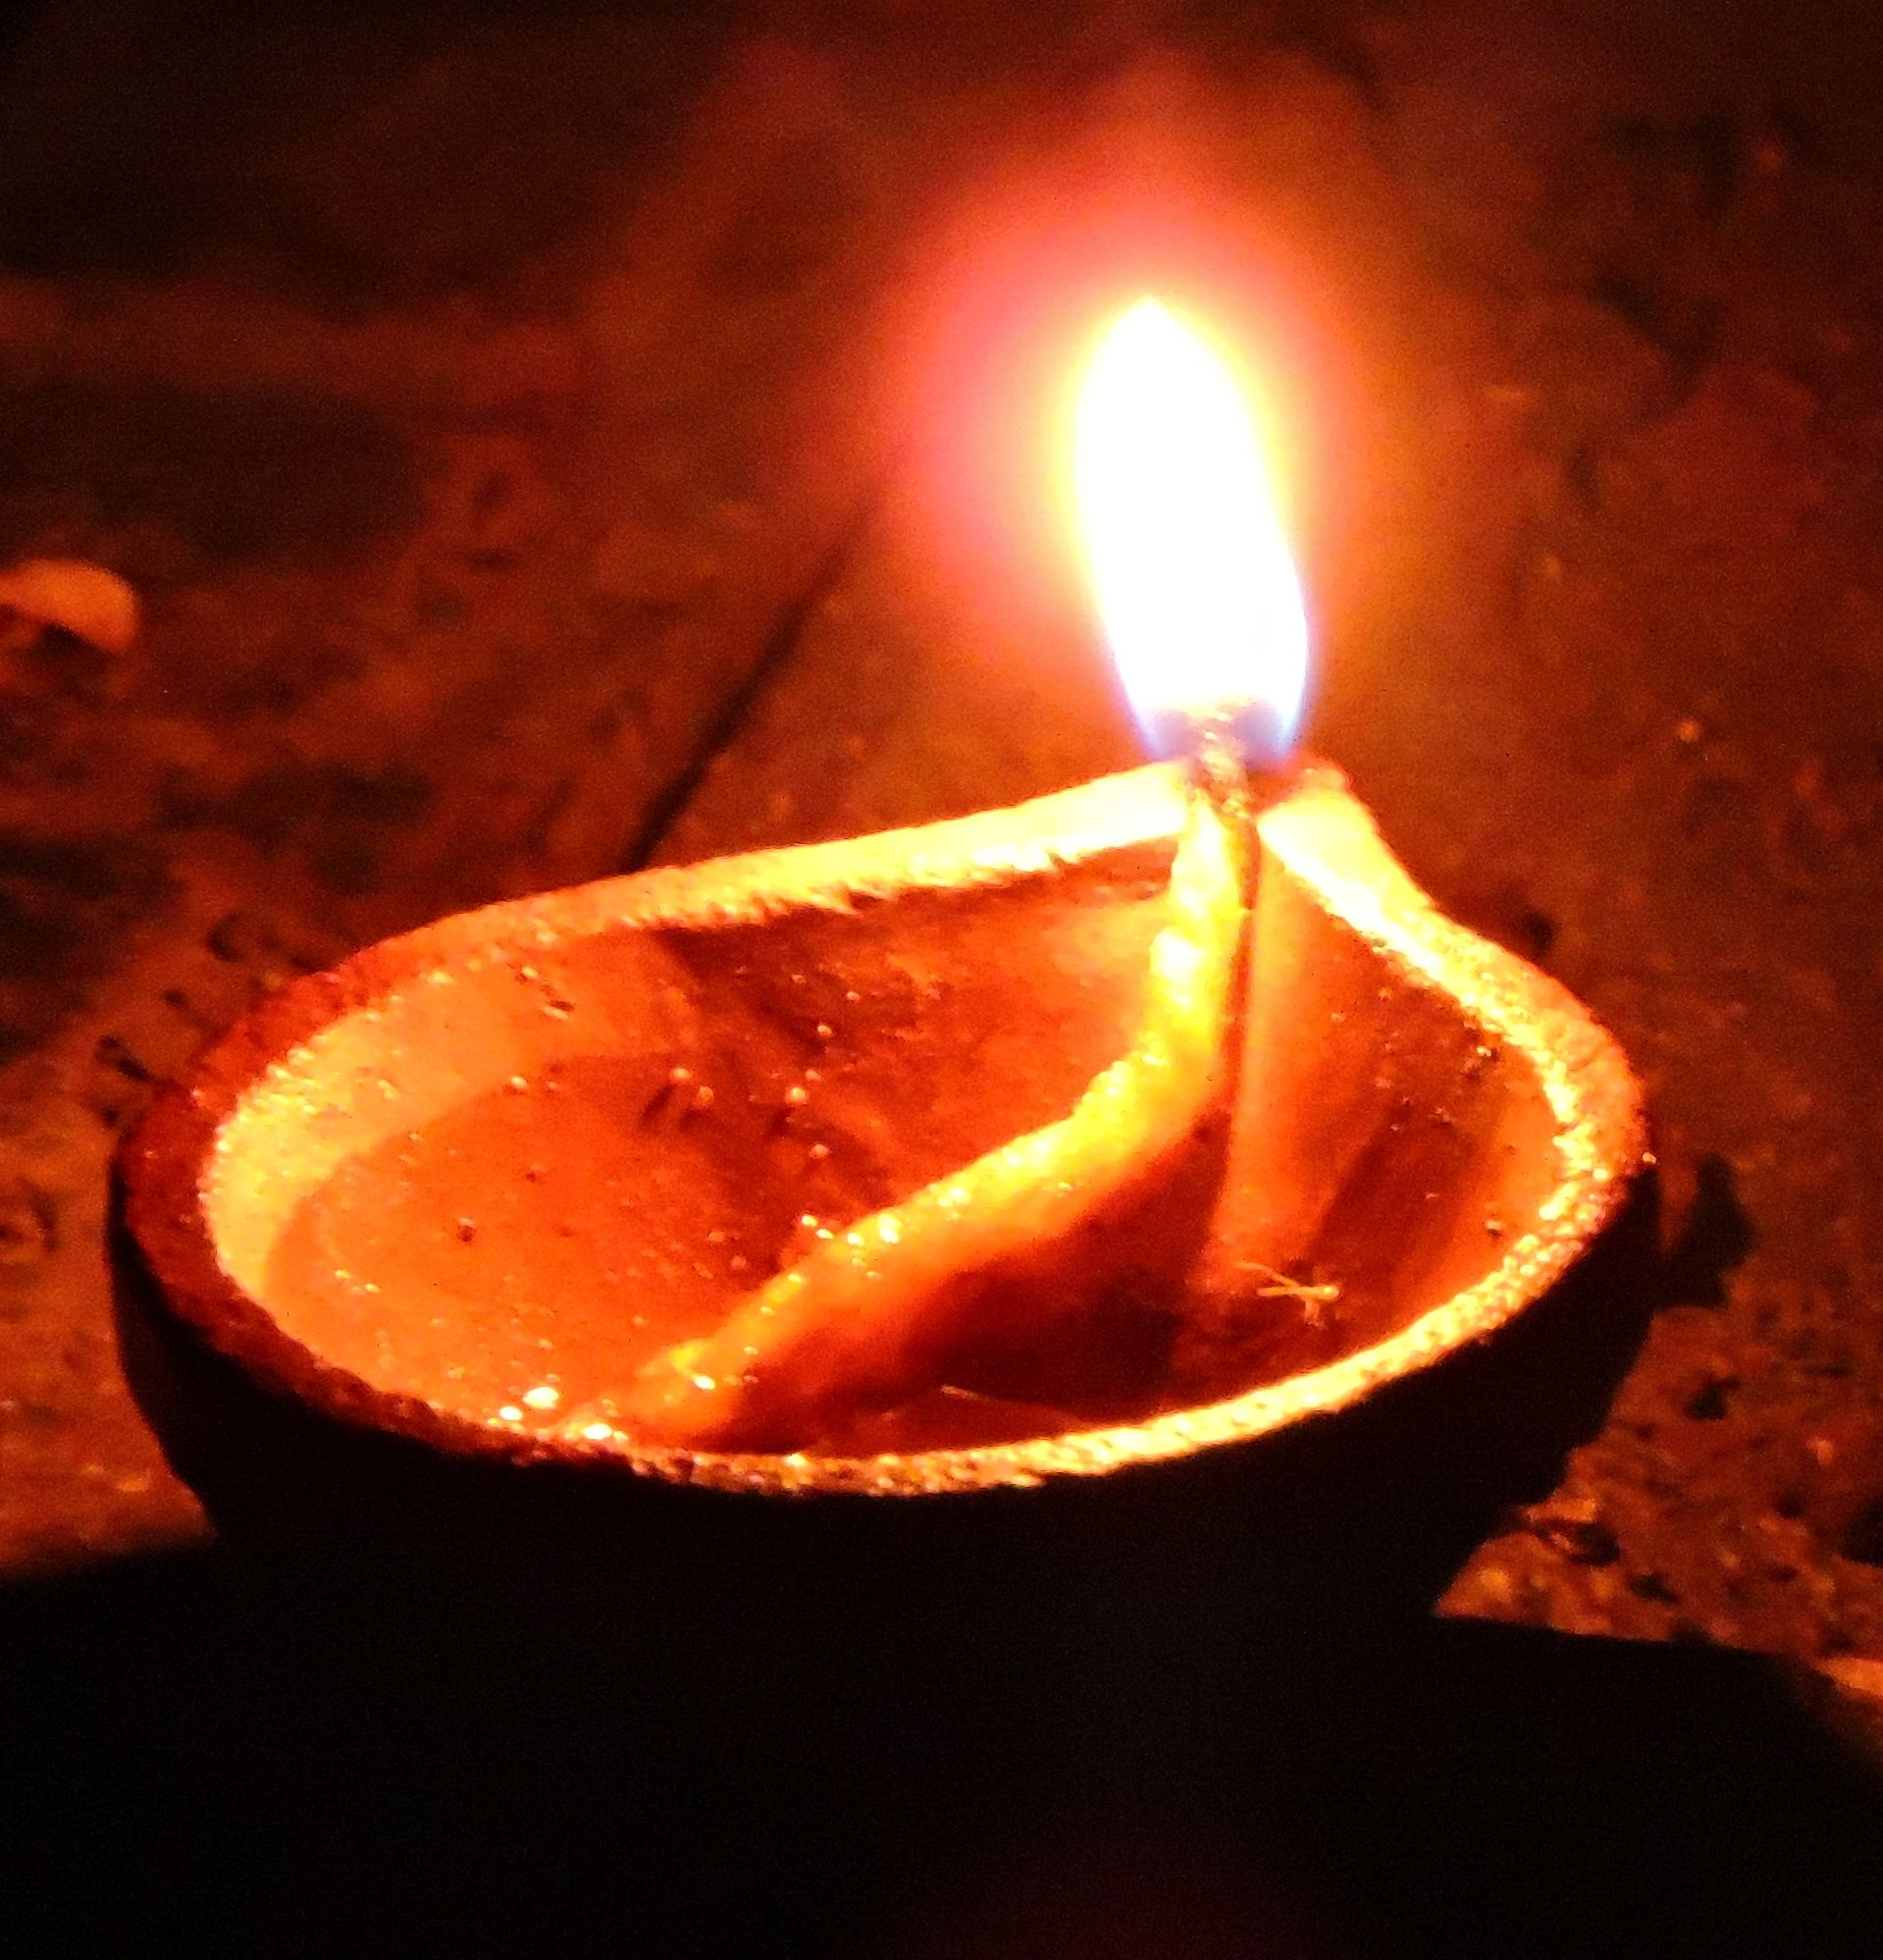 Oil Lamp Karthigai Deepam Festival Candle Photography Dark Candles Photography Happy Navratri Images